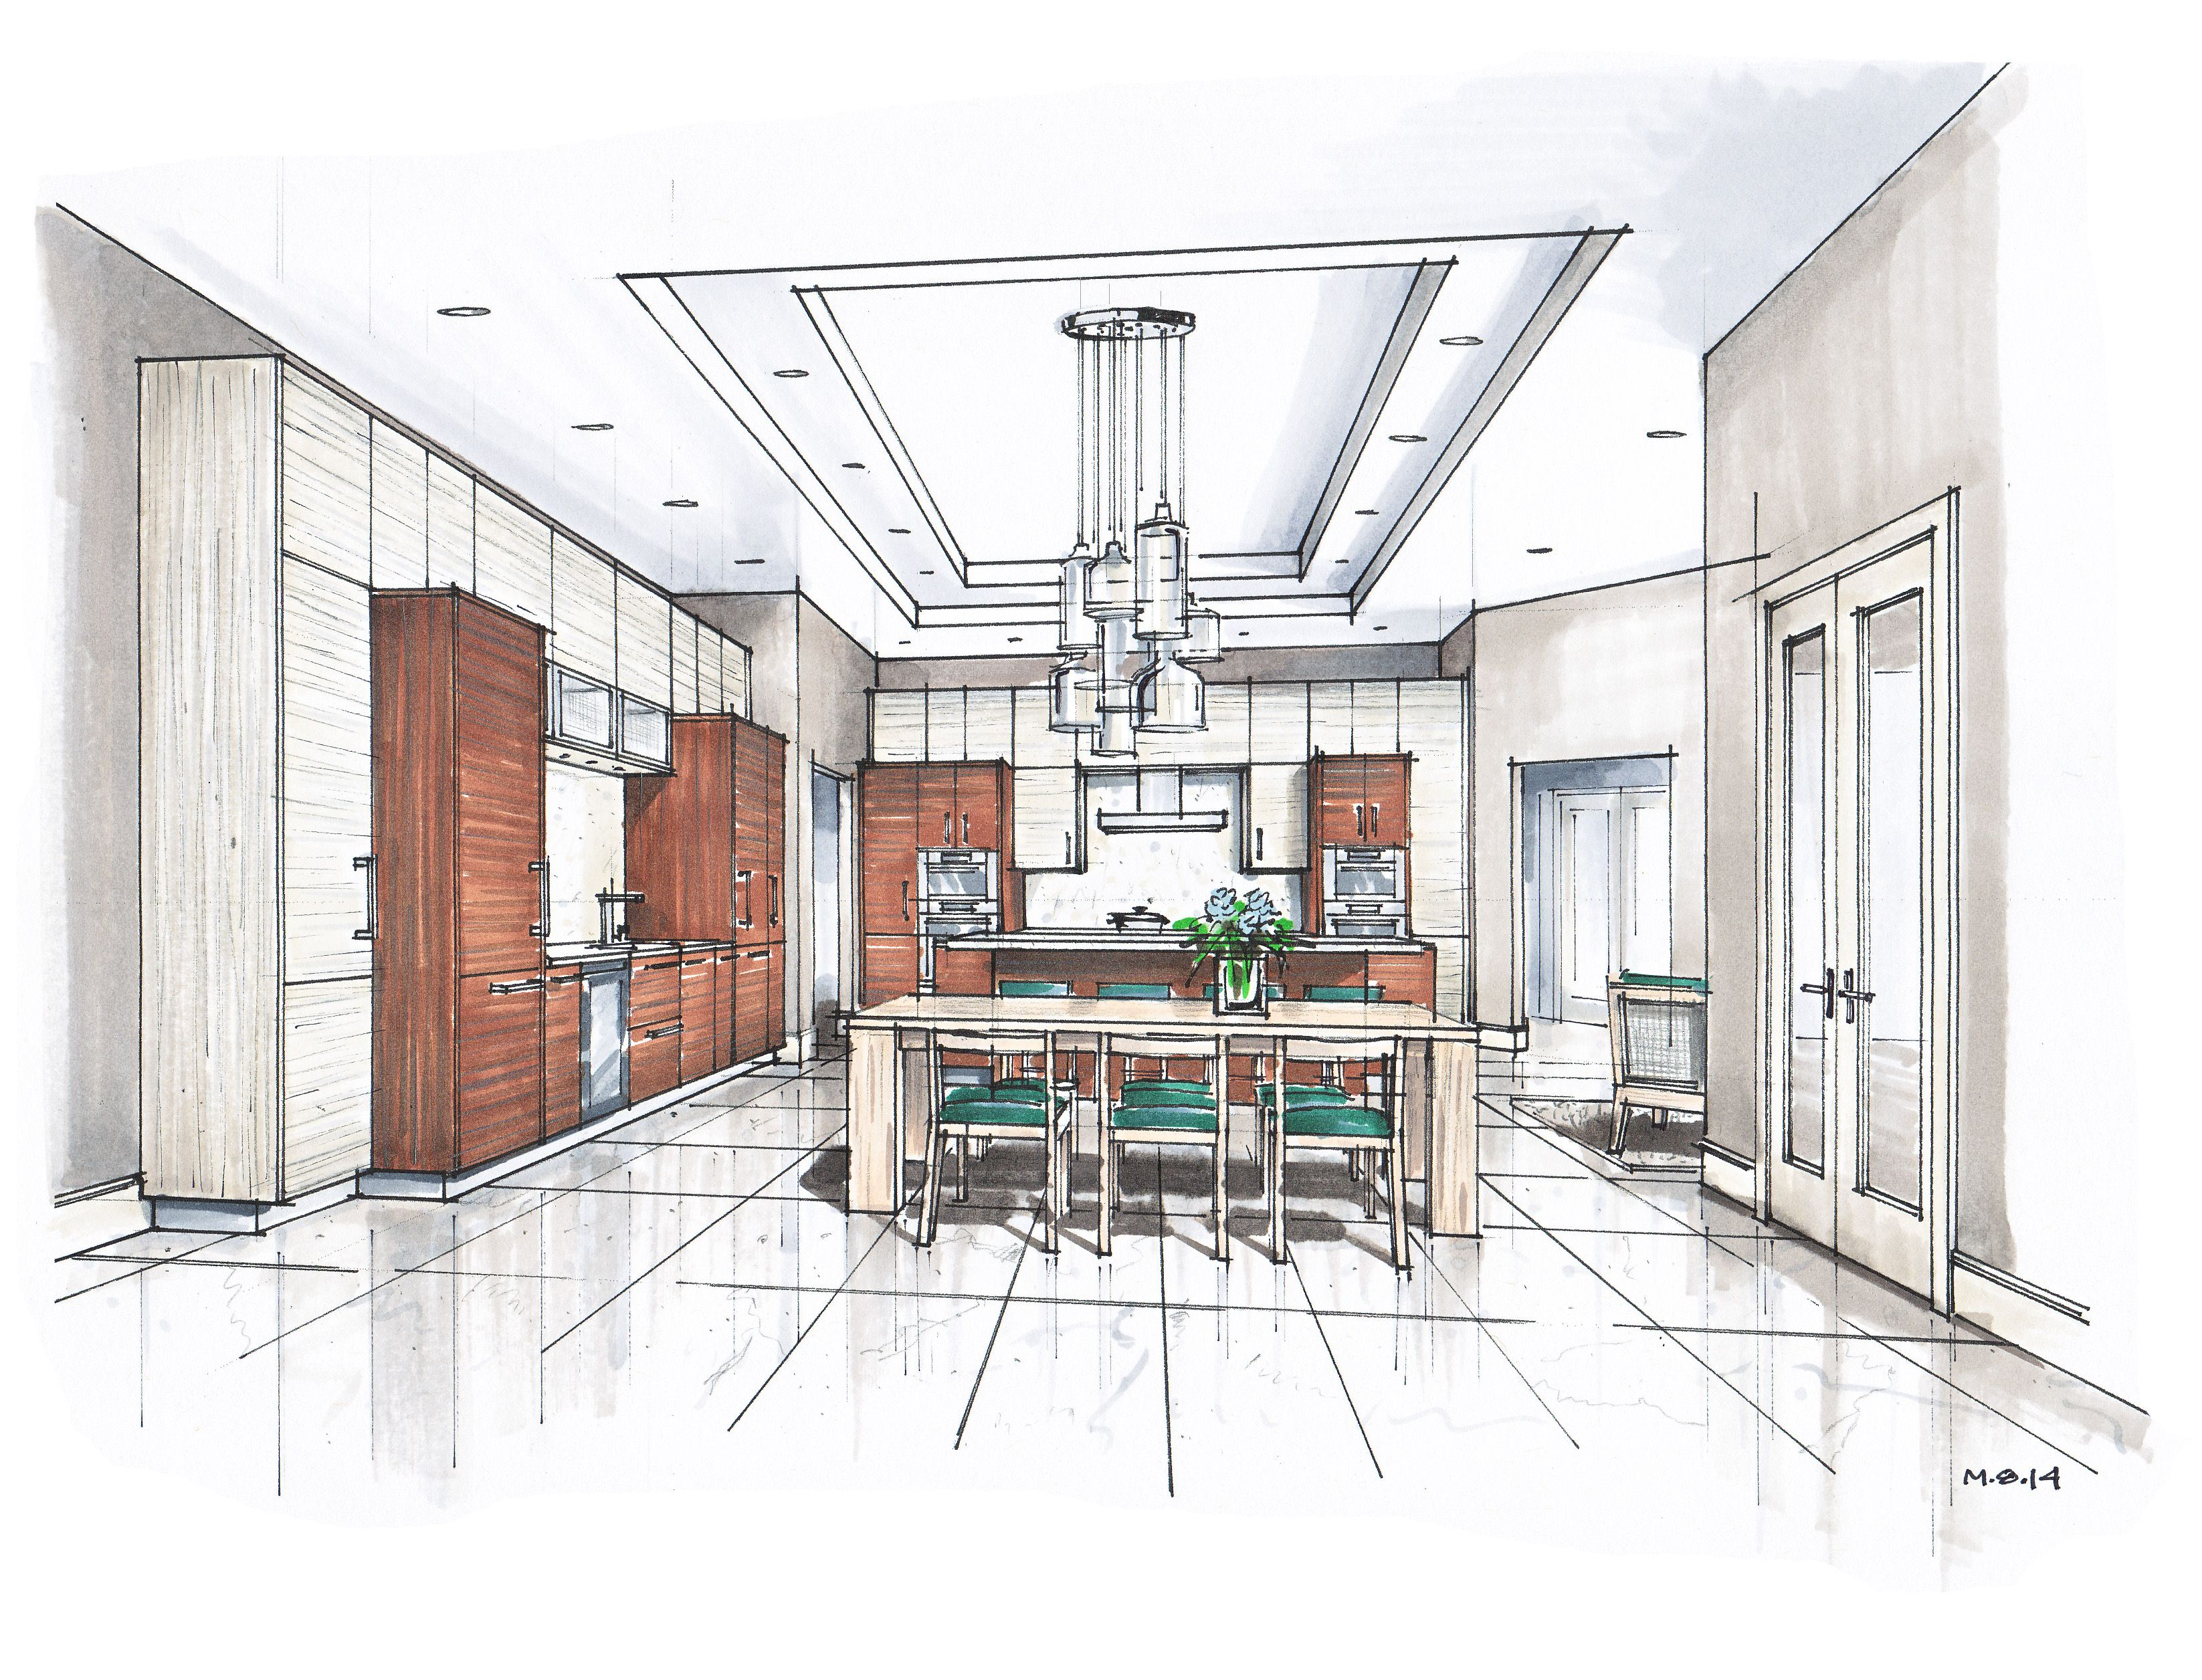 Kitchen rendering google search hand rendering for Interior design sketches